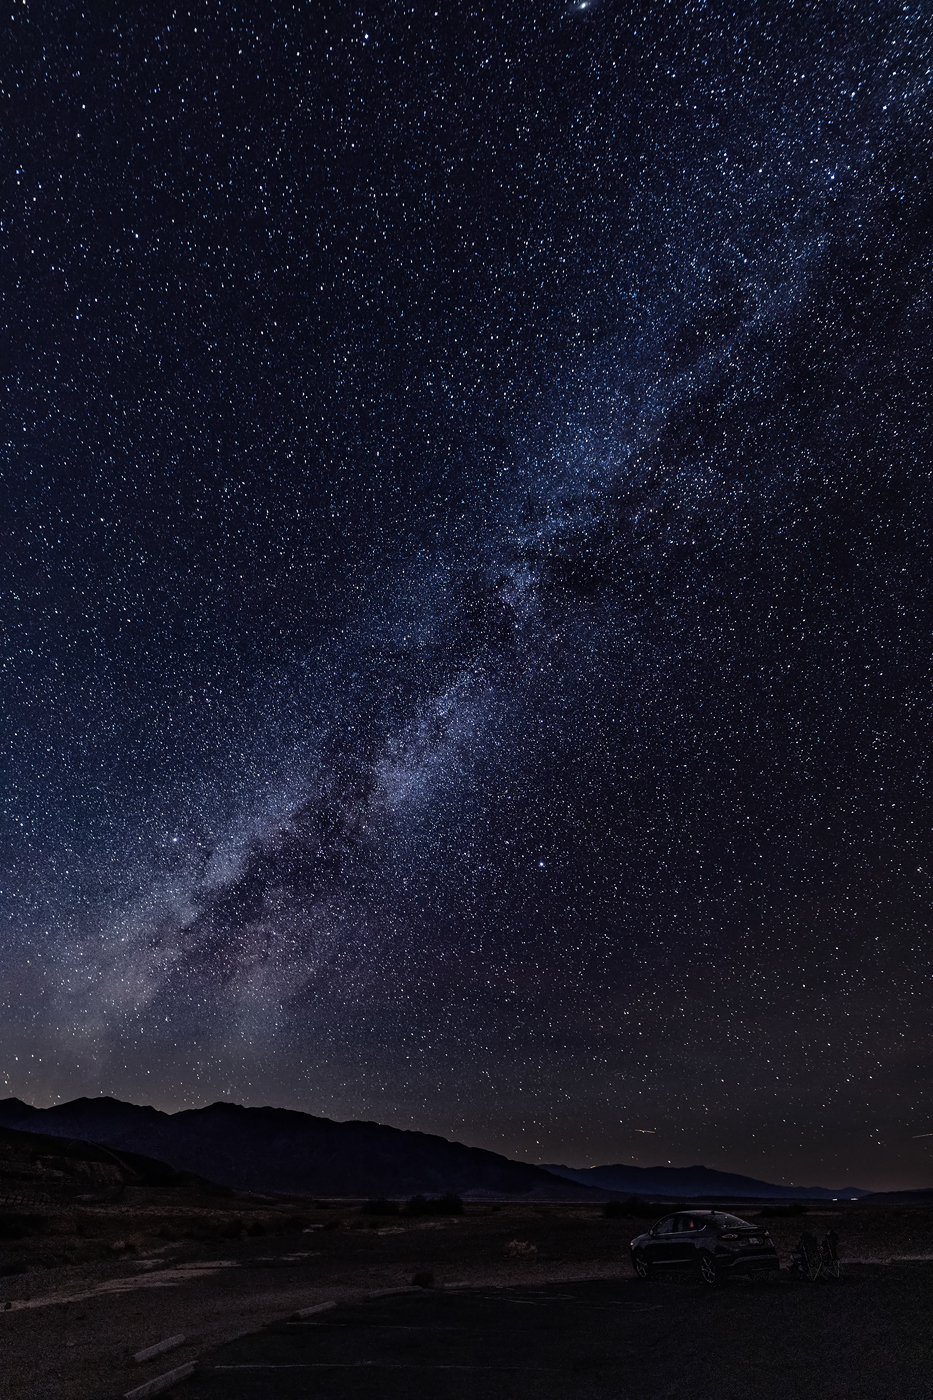 Milky Way, Death Valley National Park, California